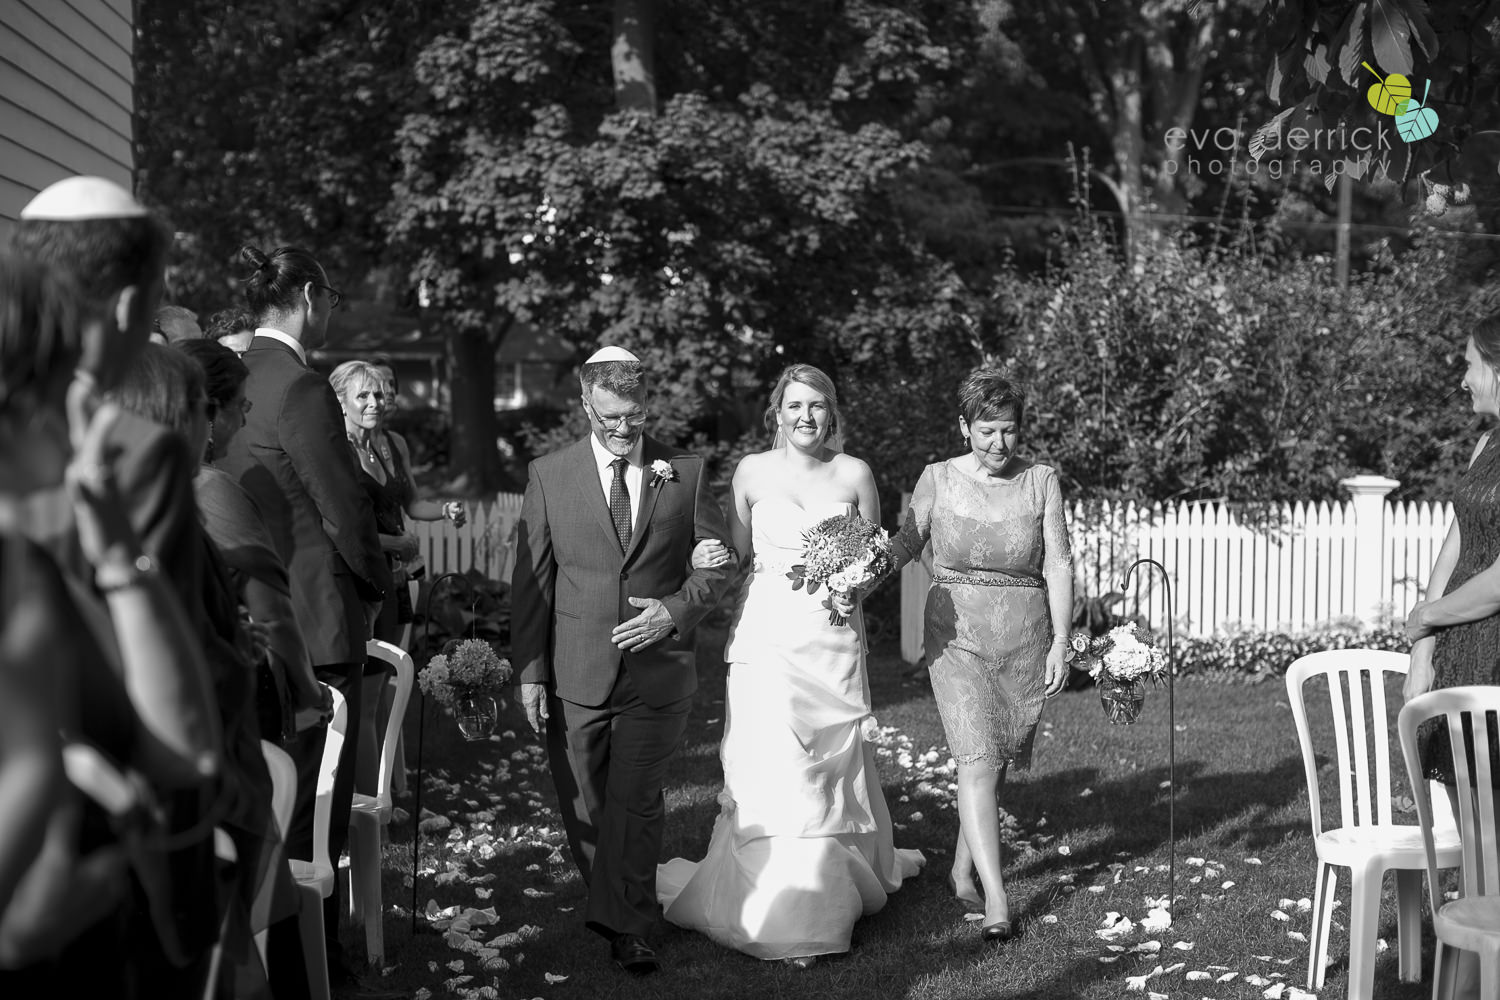 Vintage-hotels-wedding-Niagara-on-the-Lake-Pillar-and-Post-photo-by-eva-derrick-photography-036.JPG